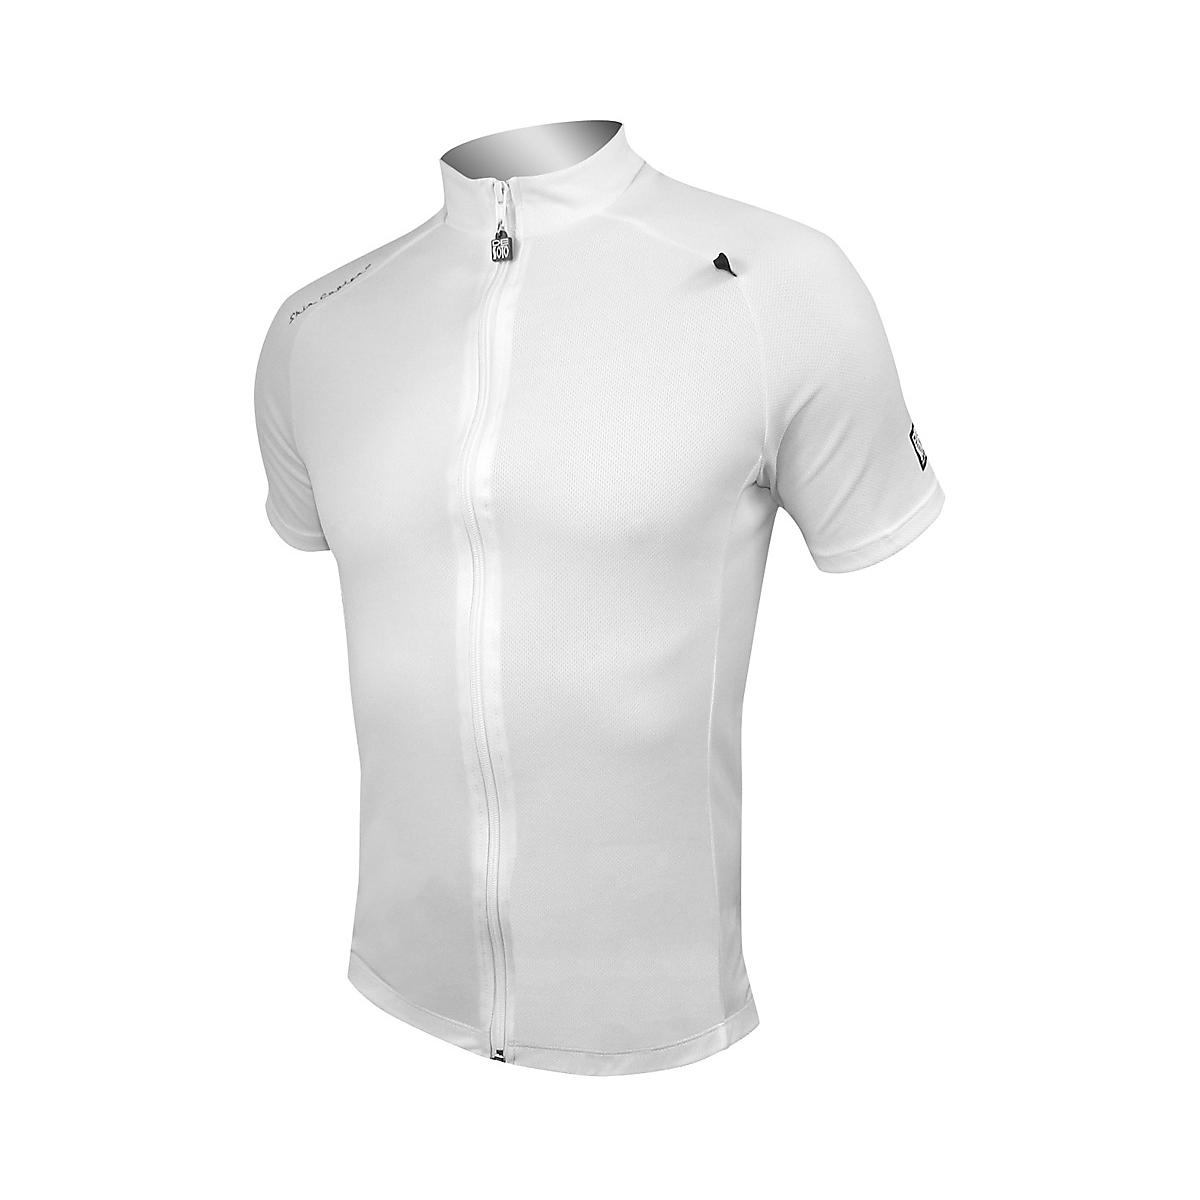 Men's De Soto�Skin Cooler Bike Jersey